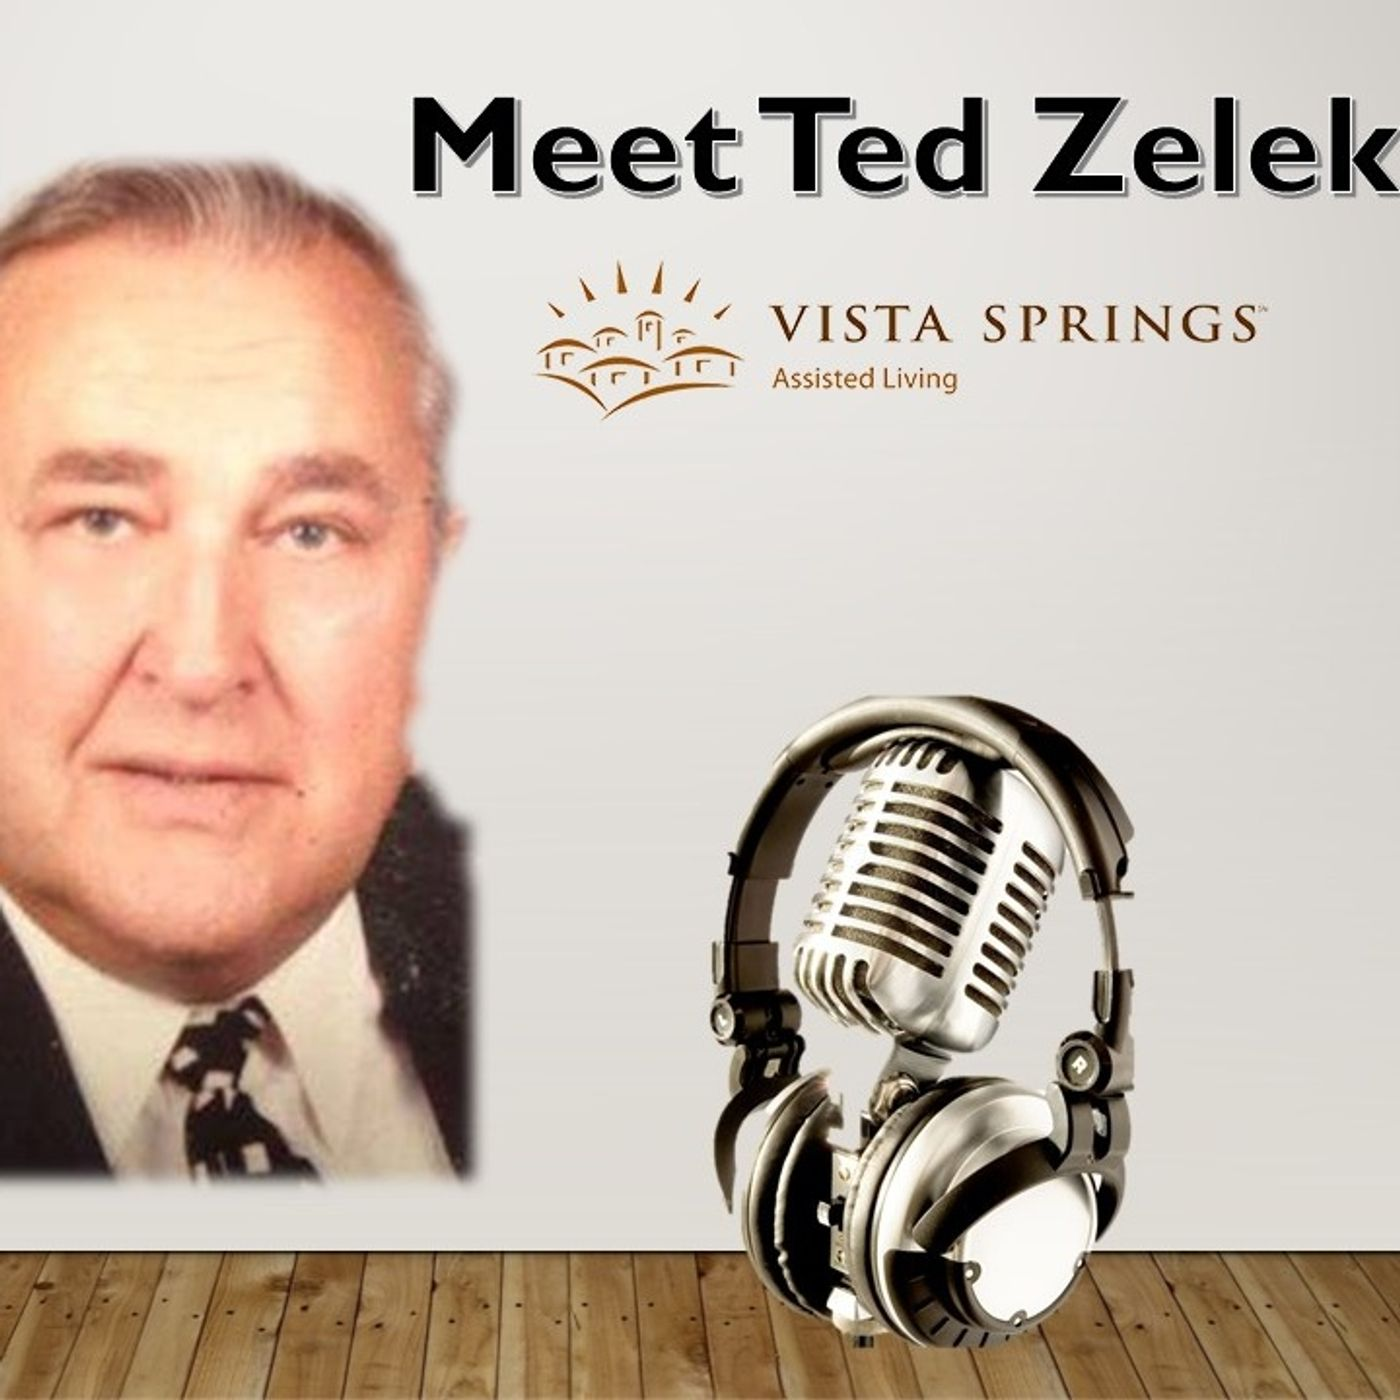 vista-springs-greenbriar-ted-zelek-8_21_18